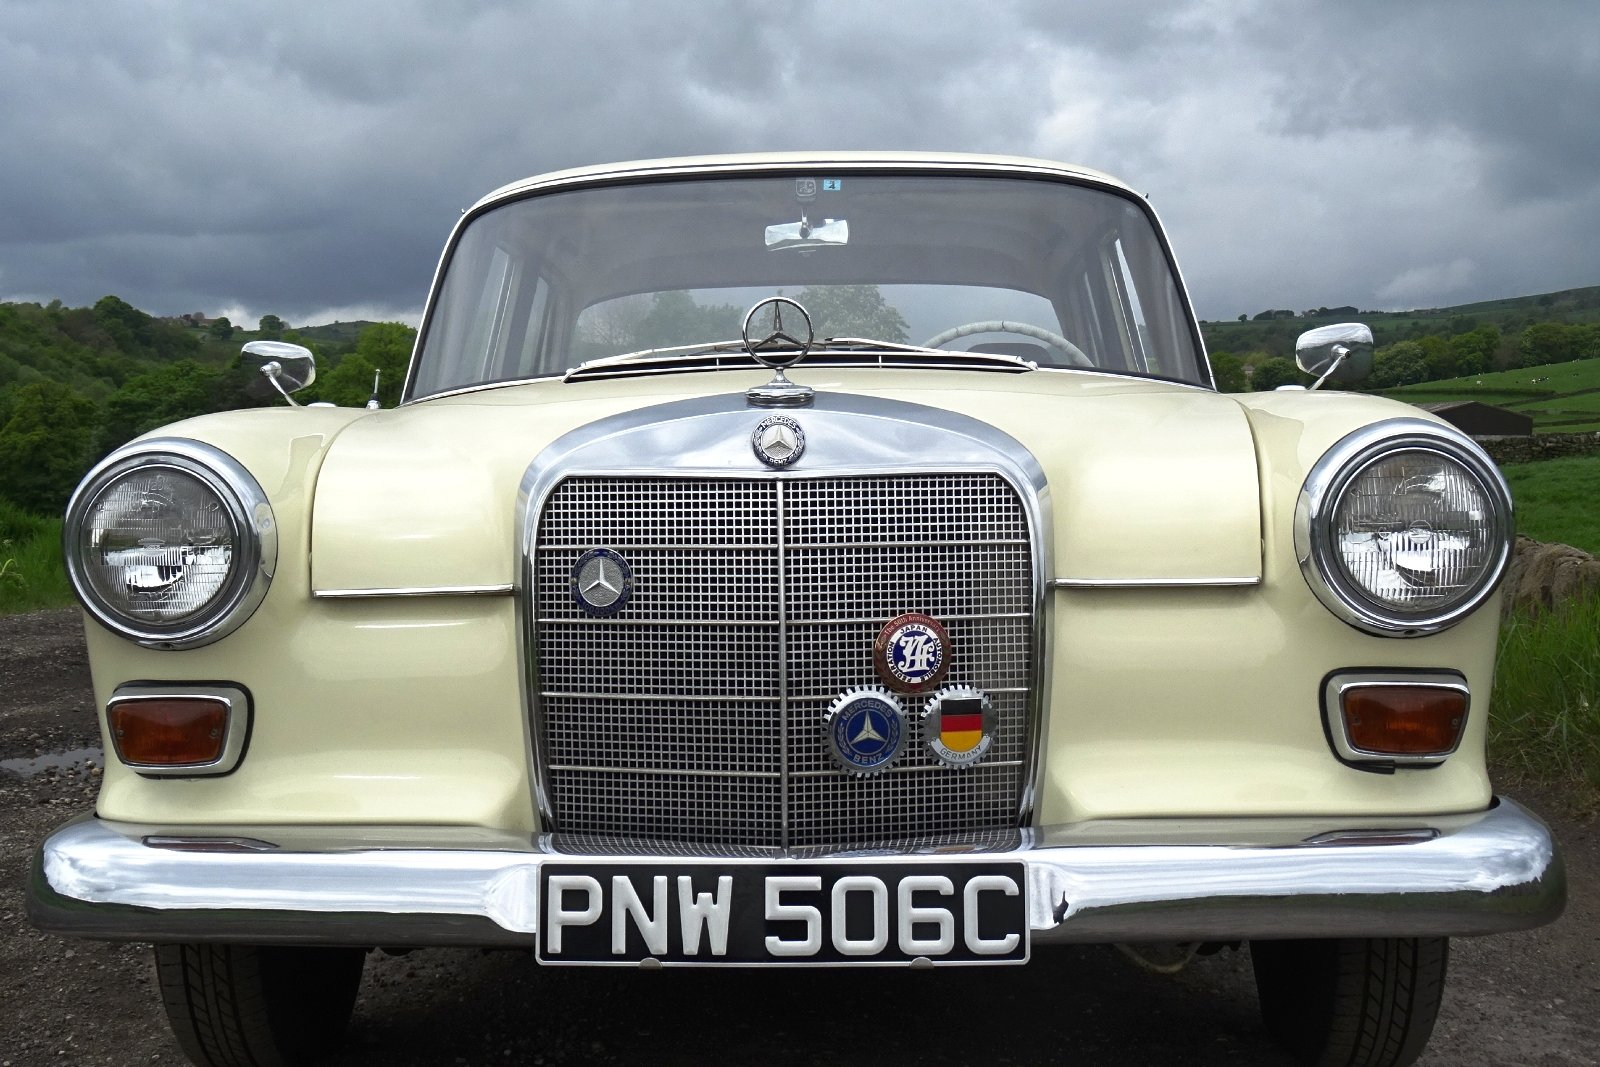 1965 MERCEDES 190 FINTAIL SALOON SOLID BODY BEAUTIFUL INTERIOR SOLD (picture 3 of 6)